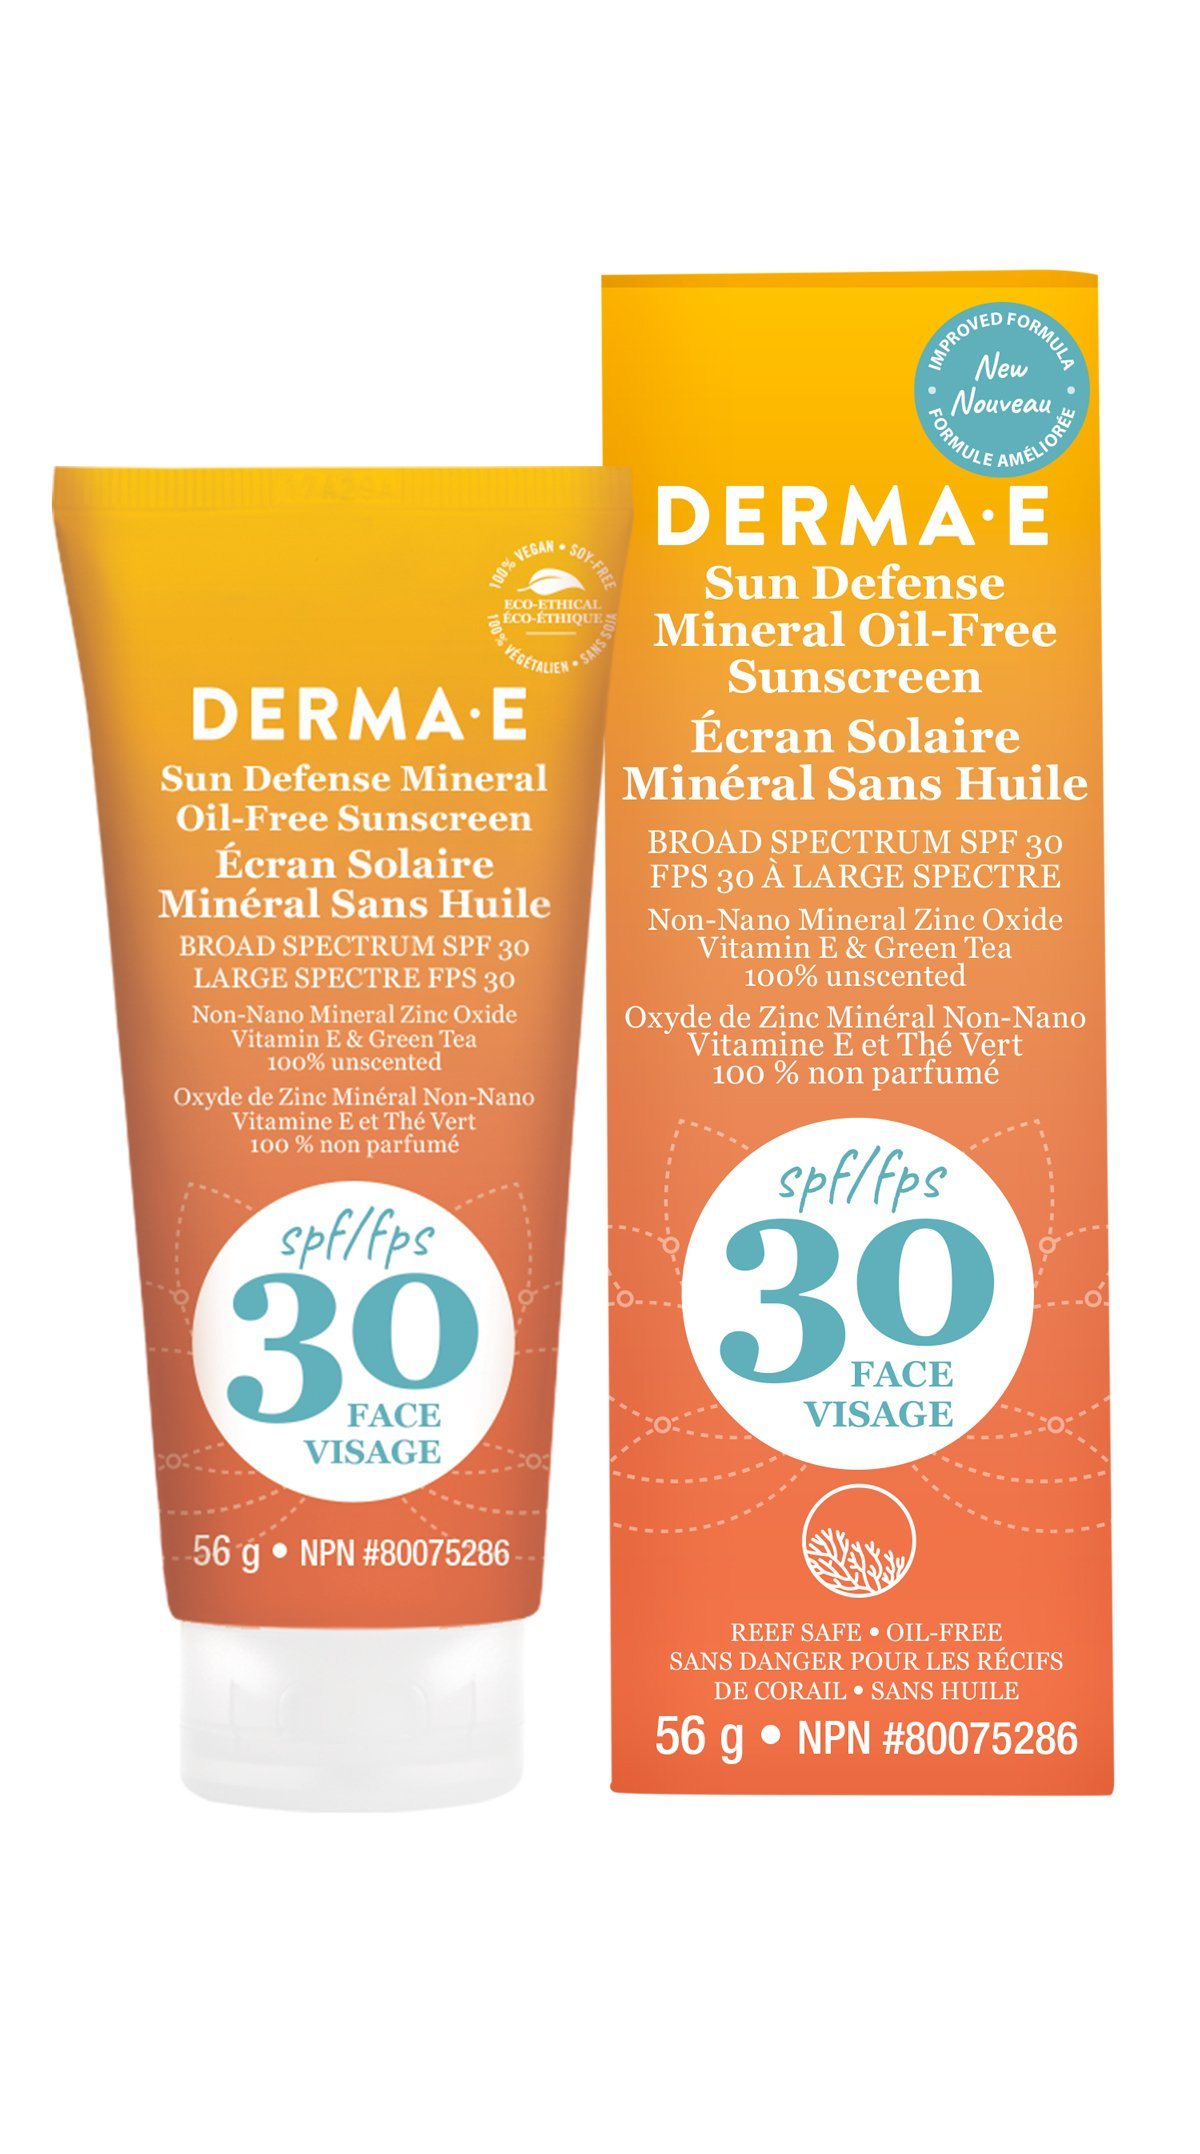 Beauty & Skin Care,Gluten Free,Vegan,Vegetarian,Non GMO - Derma E - Antioxidant Natural Sunscreen SPF 30 Oil-Free Face Lotion, 56g